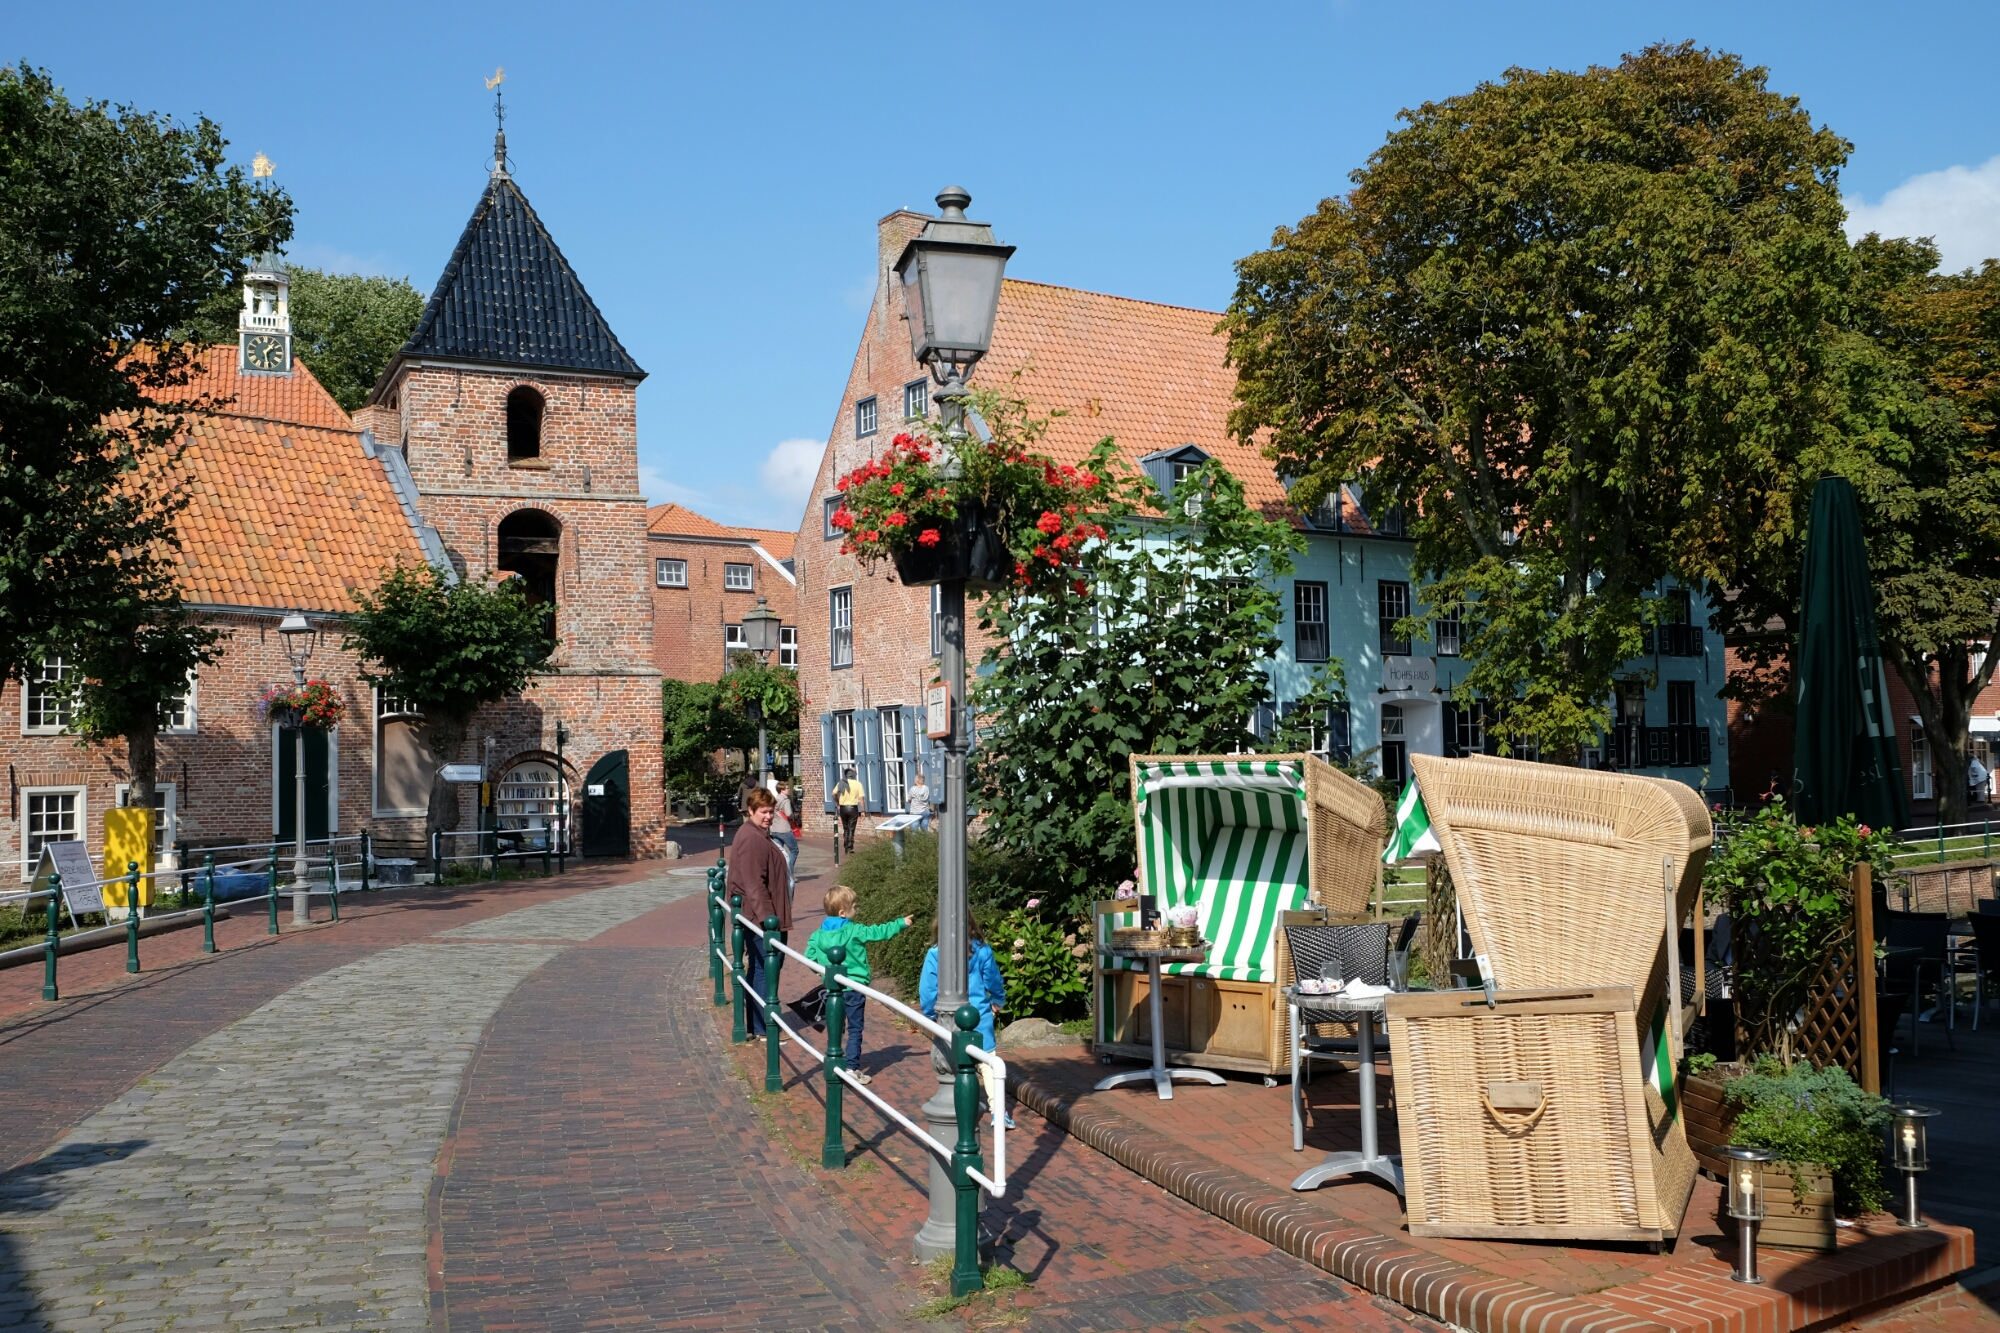 Strasse in Greetsiel